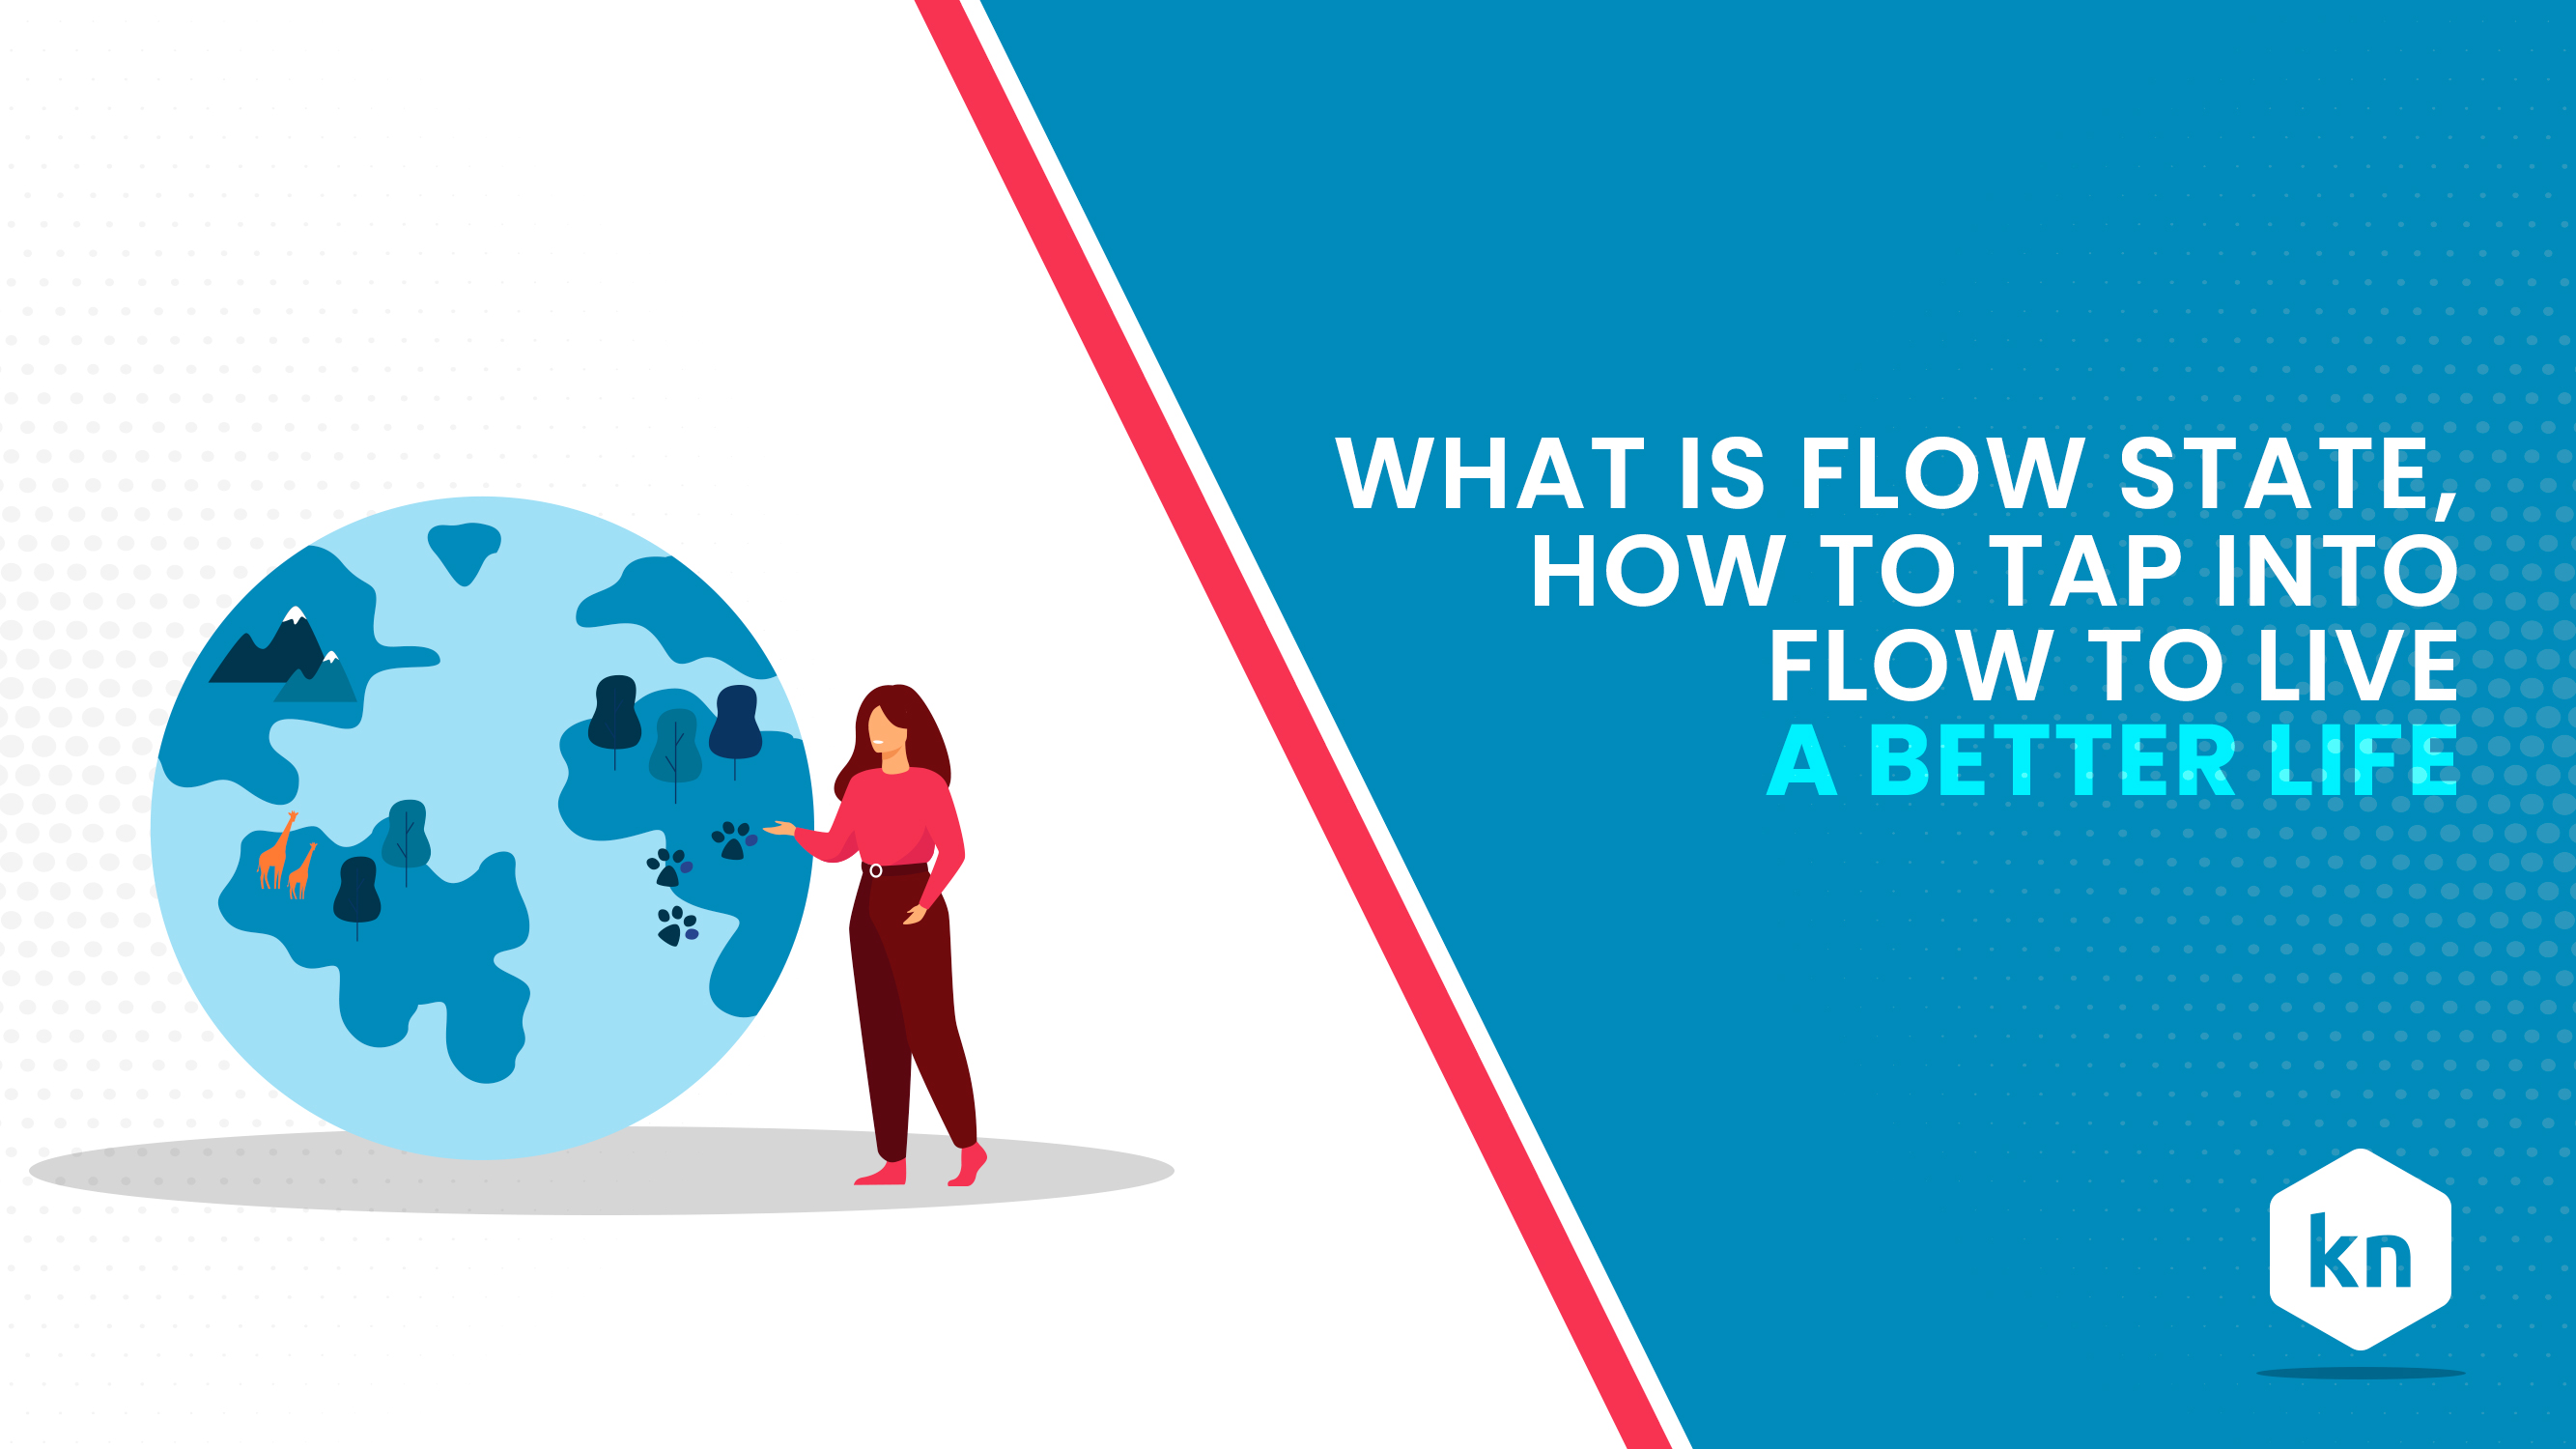 What Is Flow State: How To Tap Into Flow To Live A Better Life